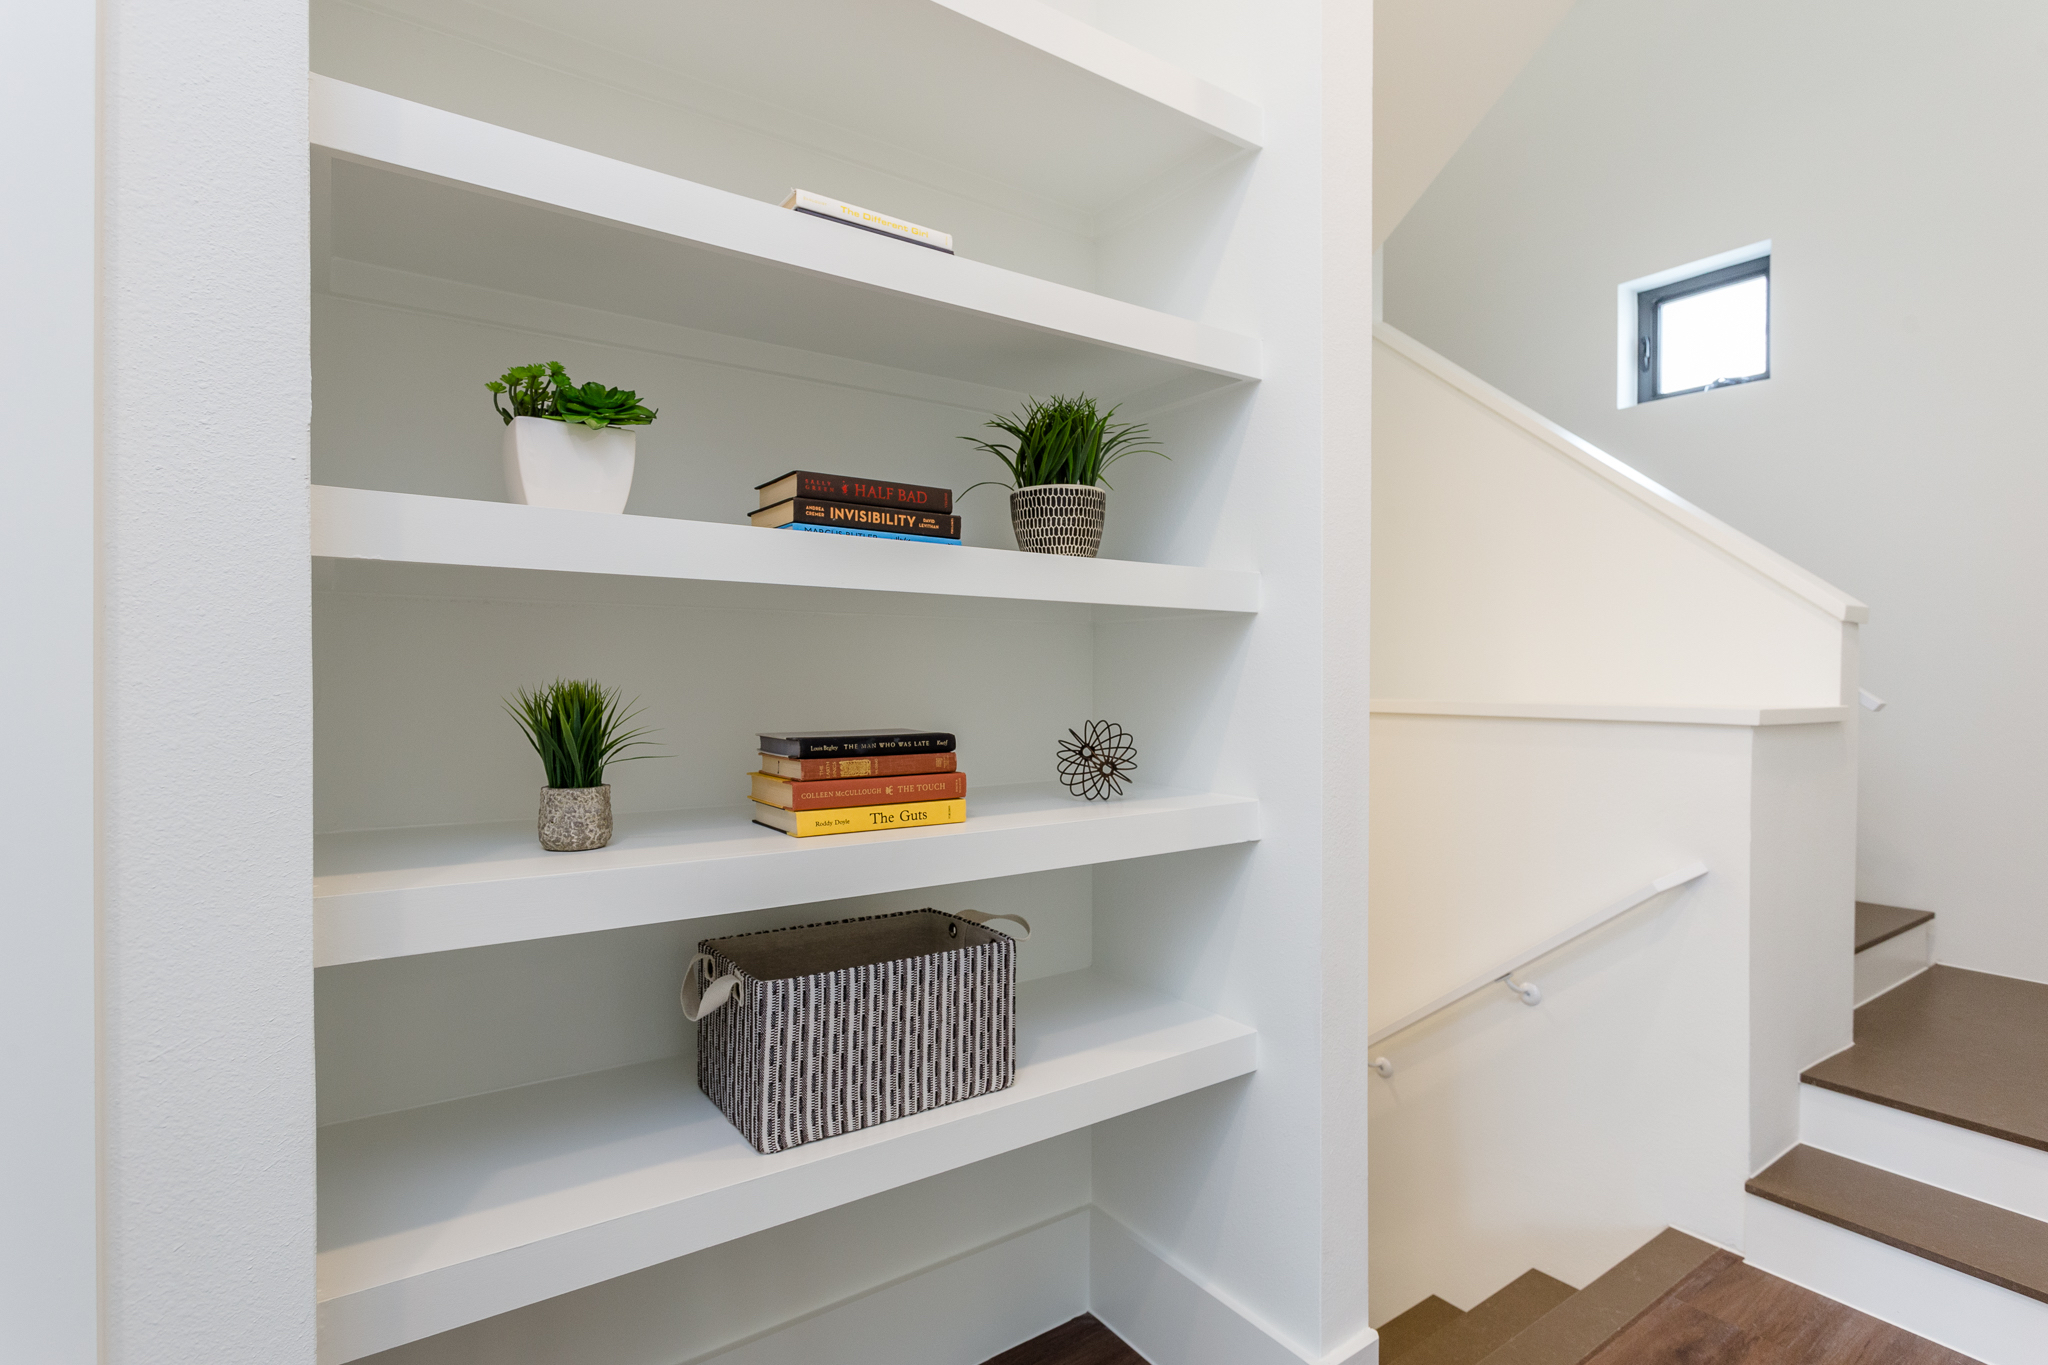 Just outside the bathroom, you'll find stylish shelving.